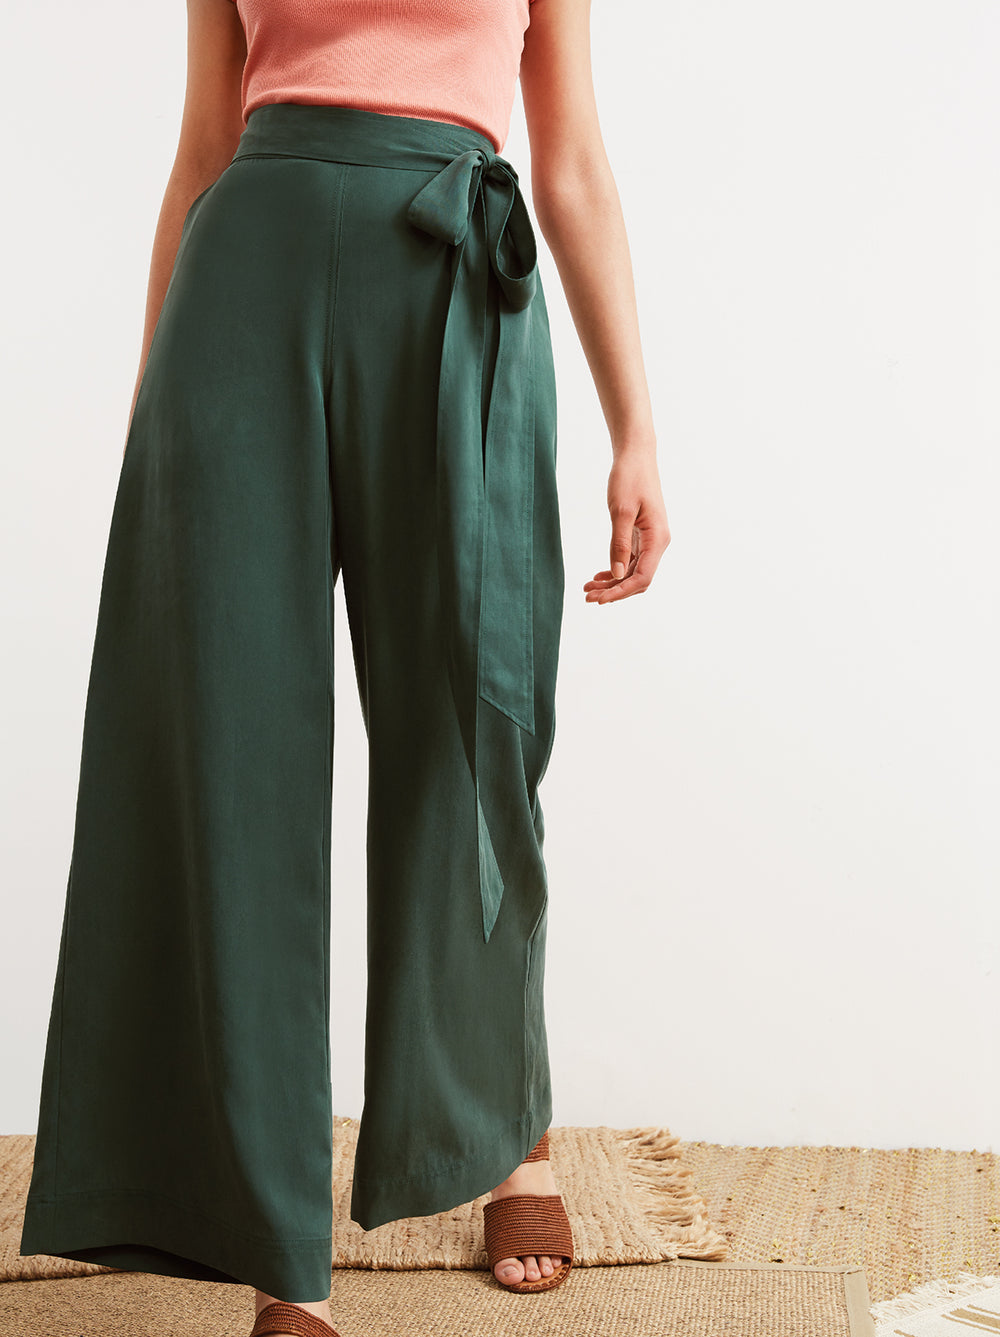 Daphne Green Wide Leg Tie Waist Trousers by KITRI Studio